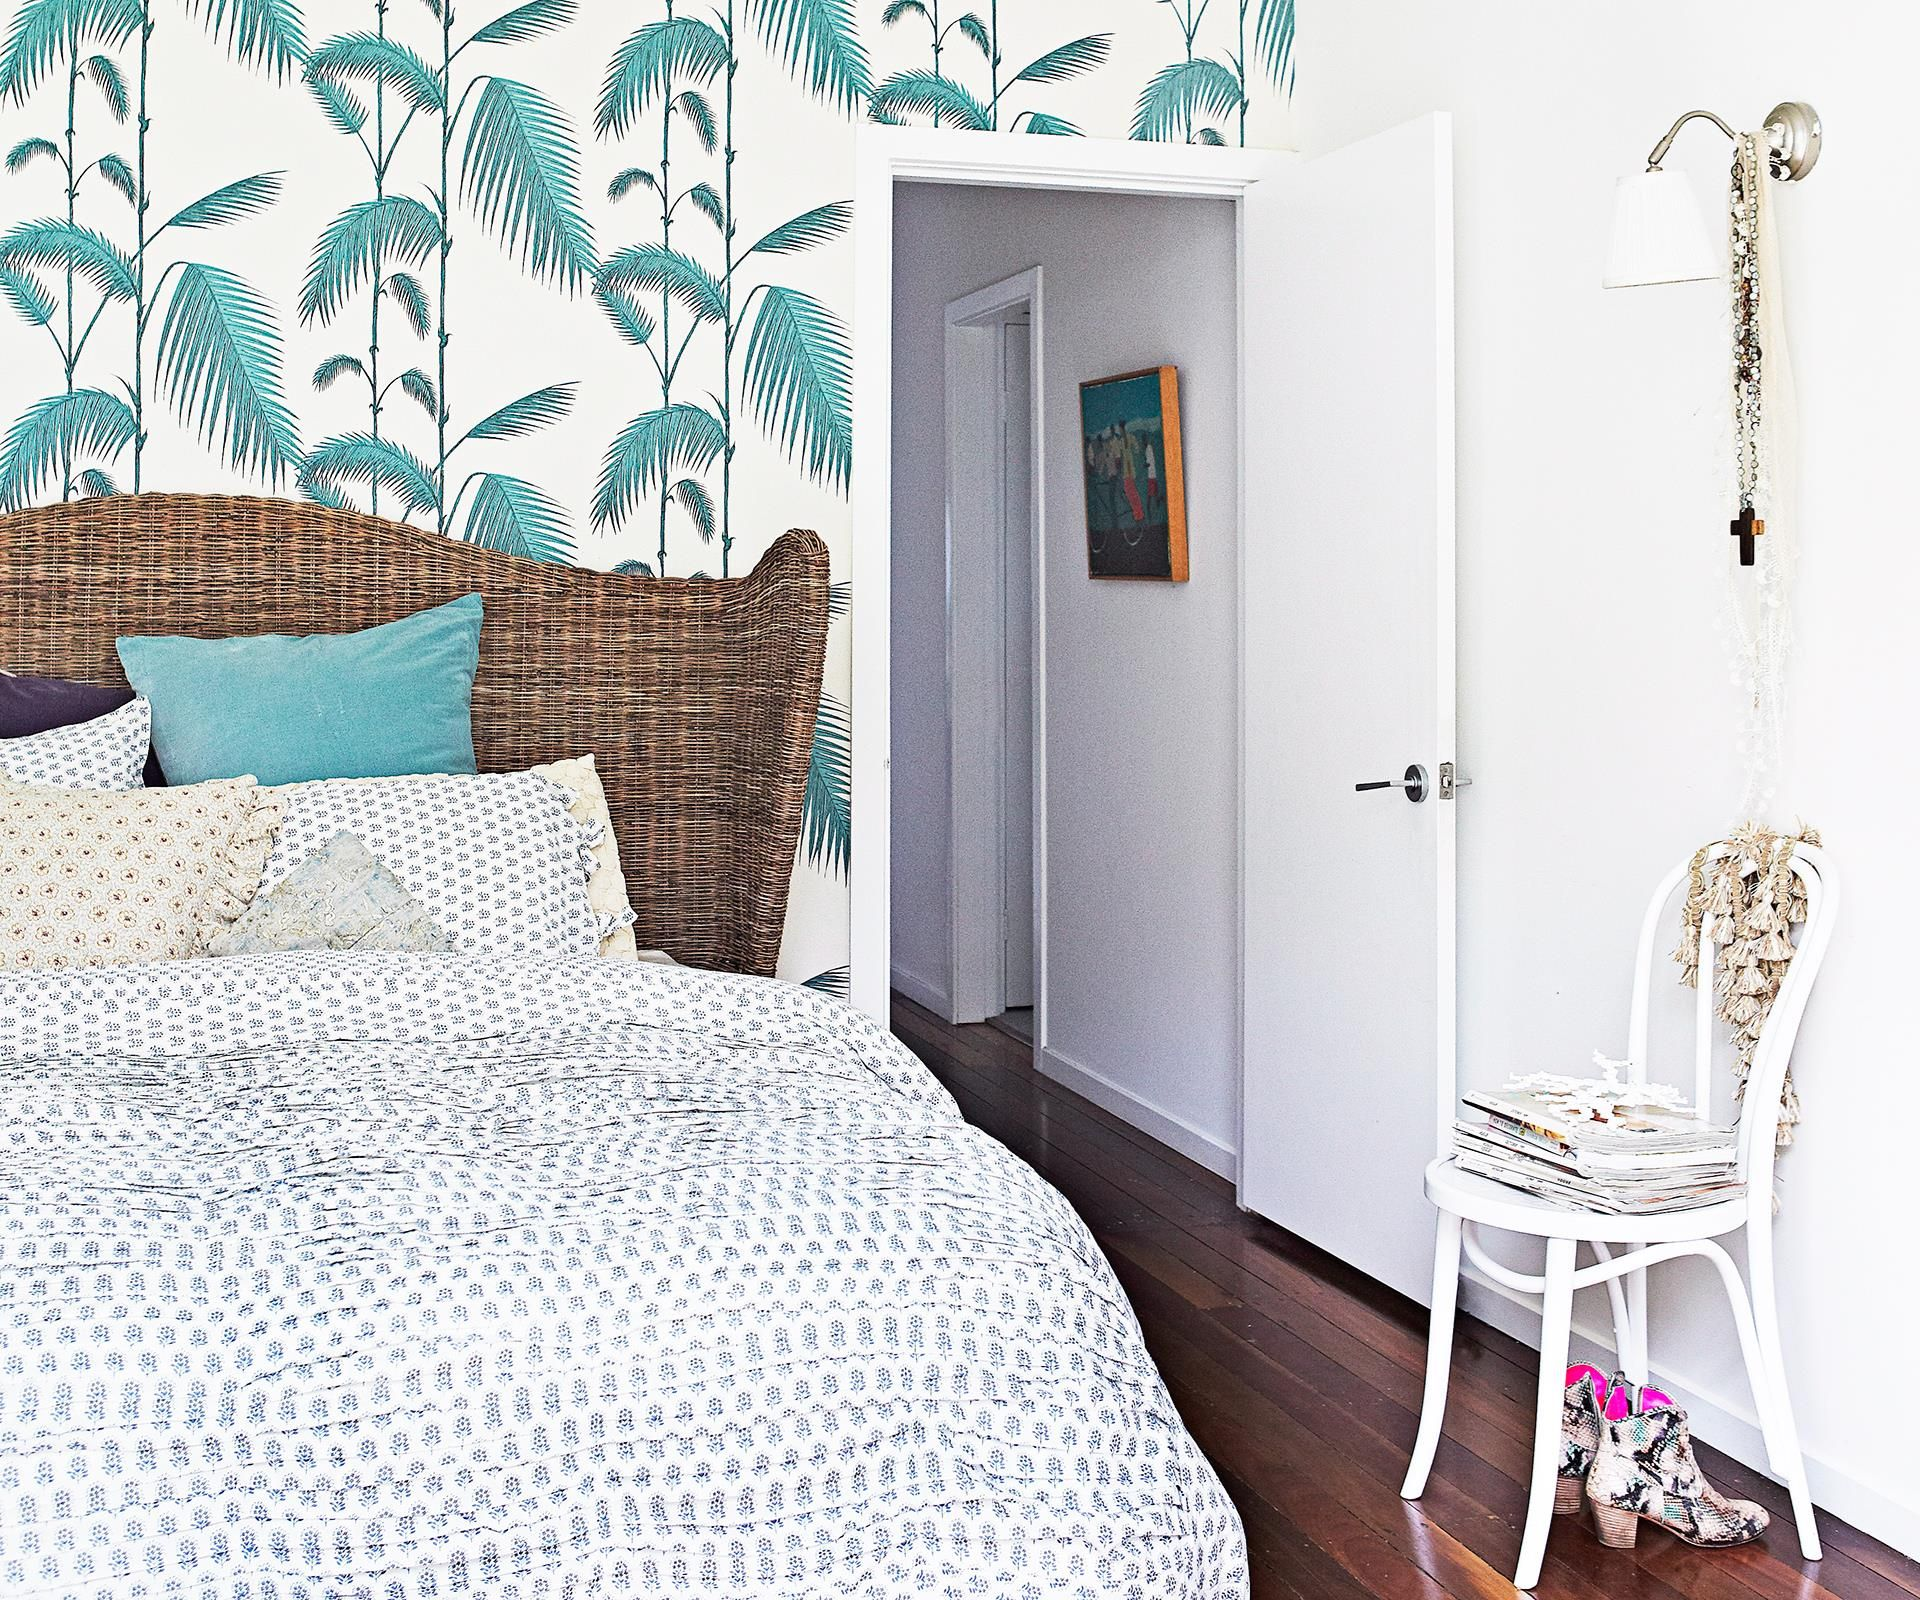 White Bedroom Ideas With Wow Factor: 4 Ways To Gain Instant Wow Factor When Selling Your Home